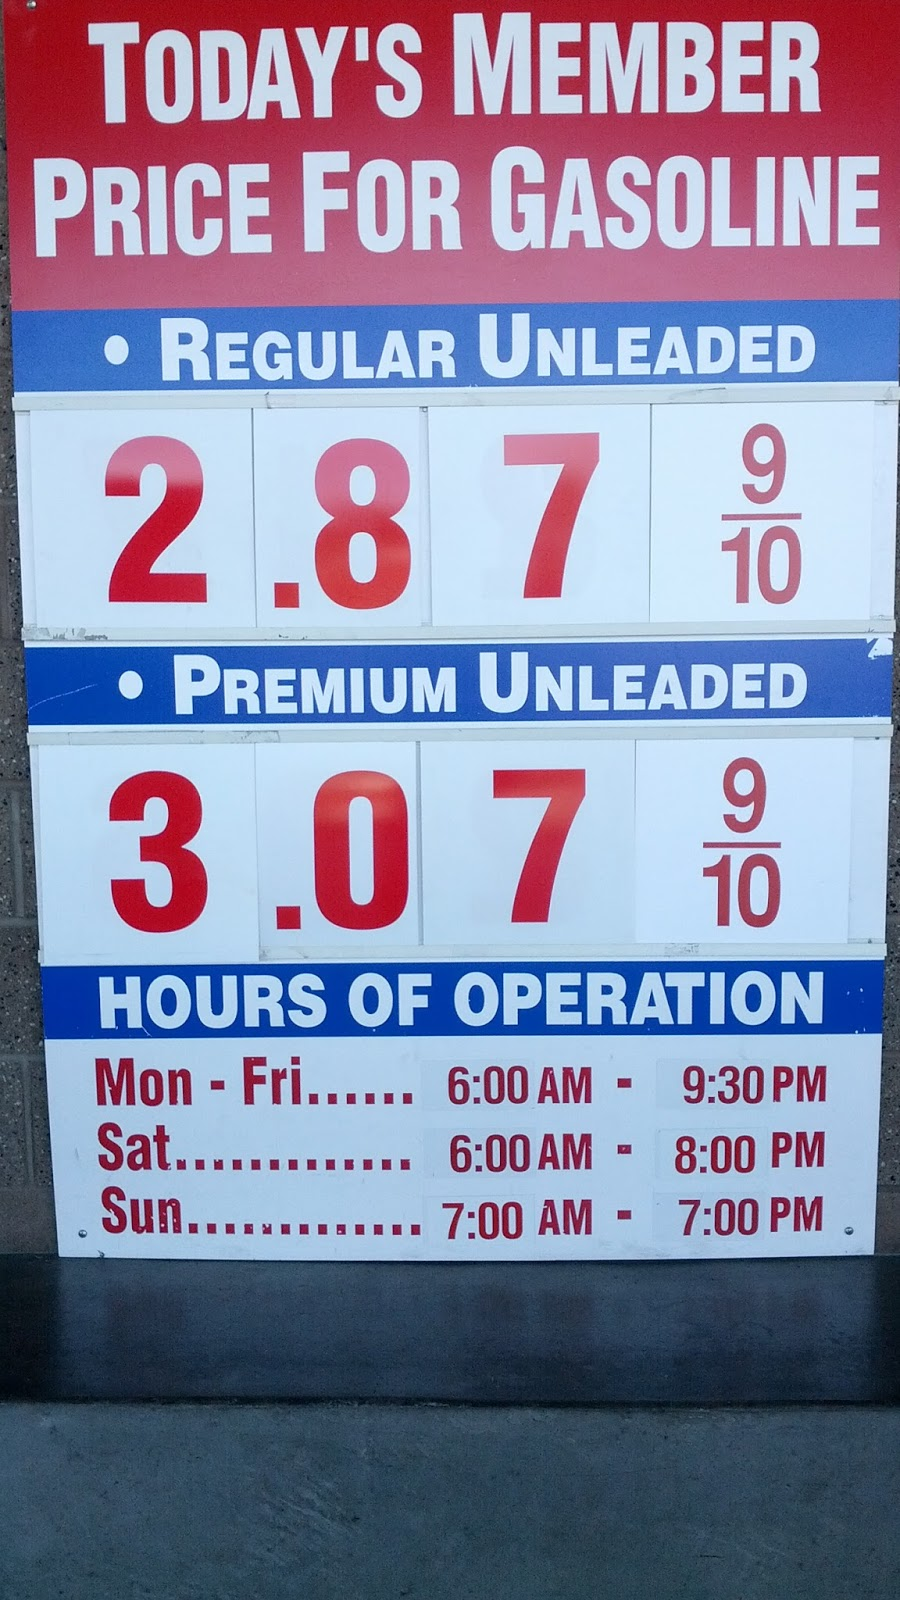 Gas Price: What Is The Gas Price At Costco